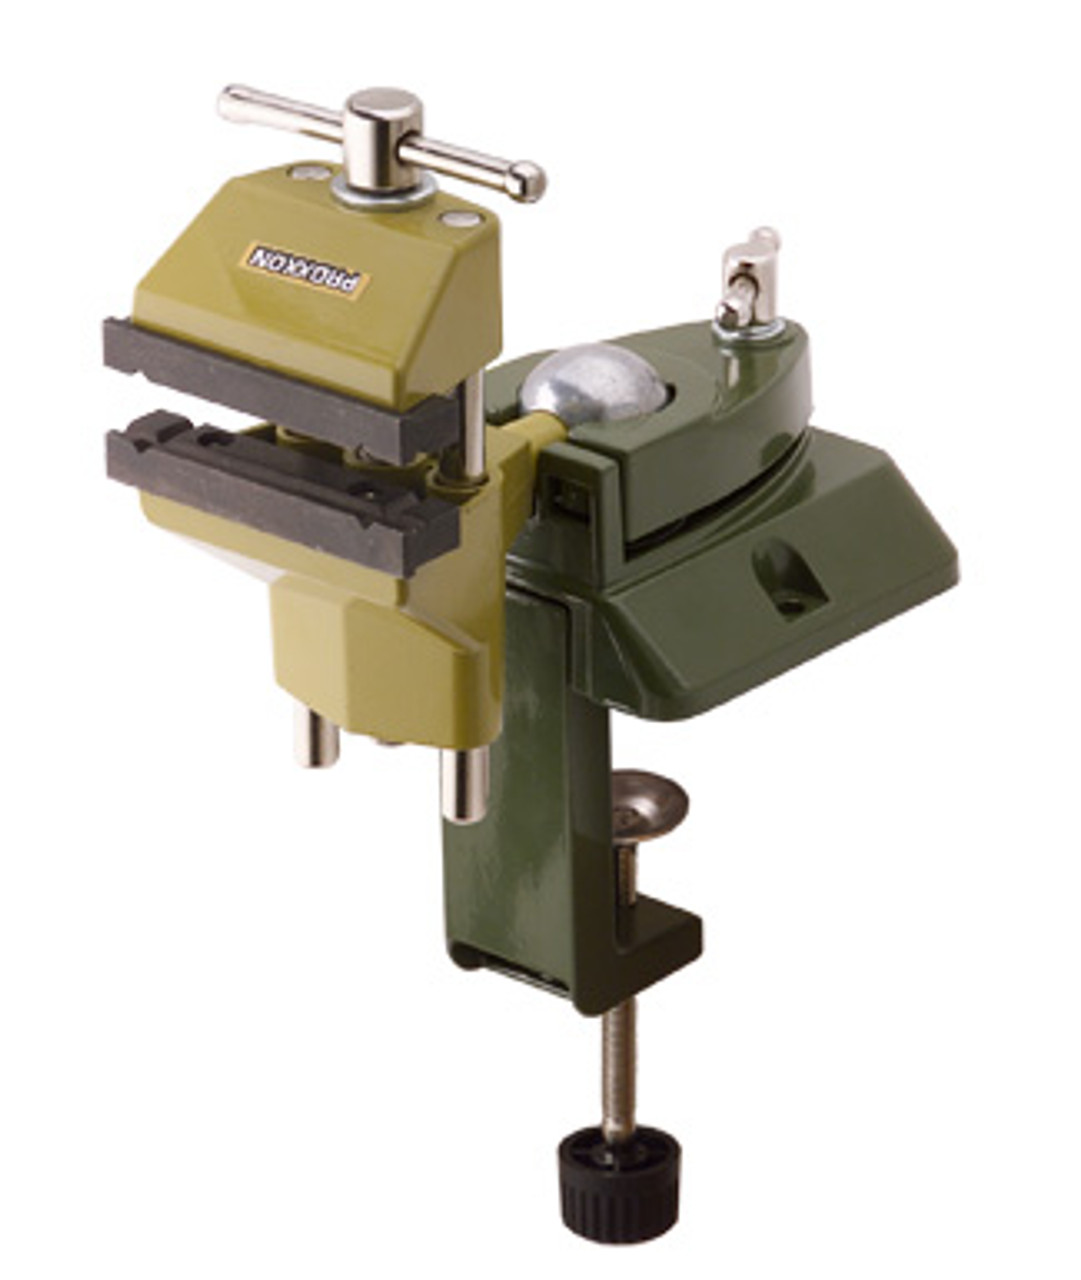 Proxxon Precision Vise FMZ, with Ball and Socket